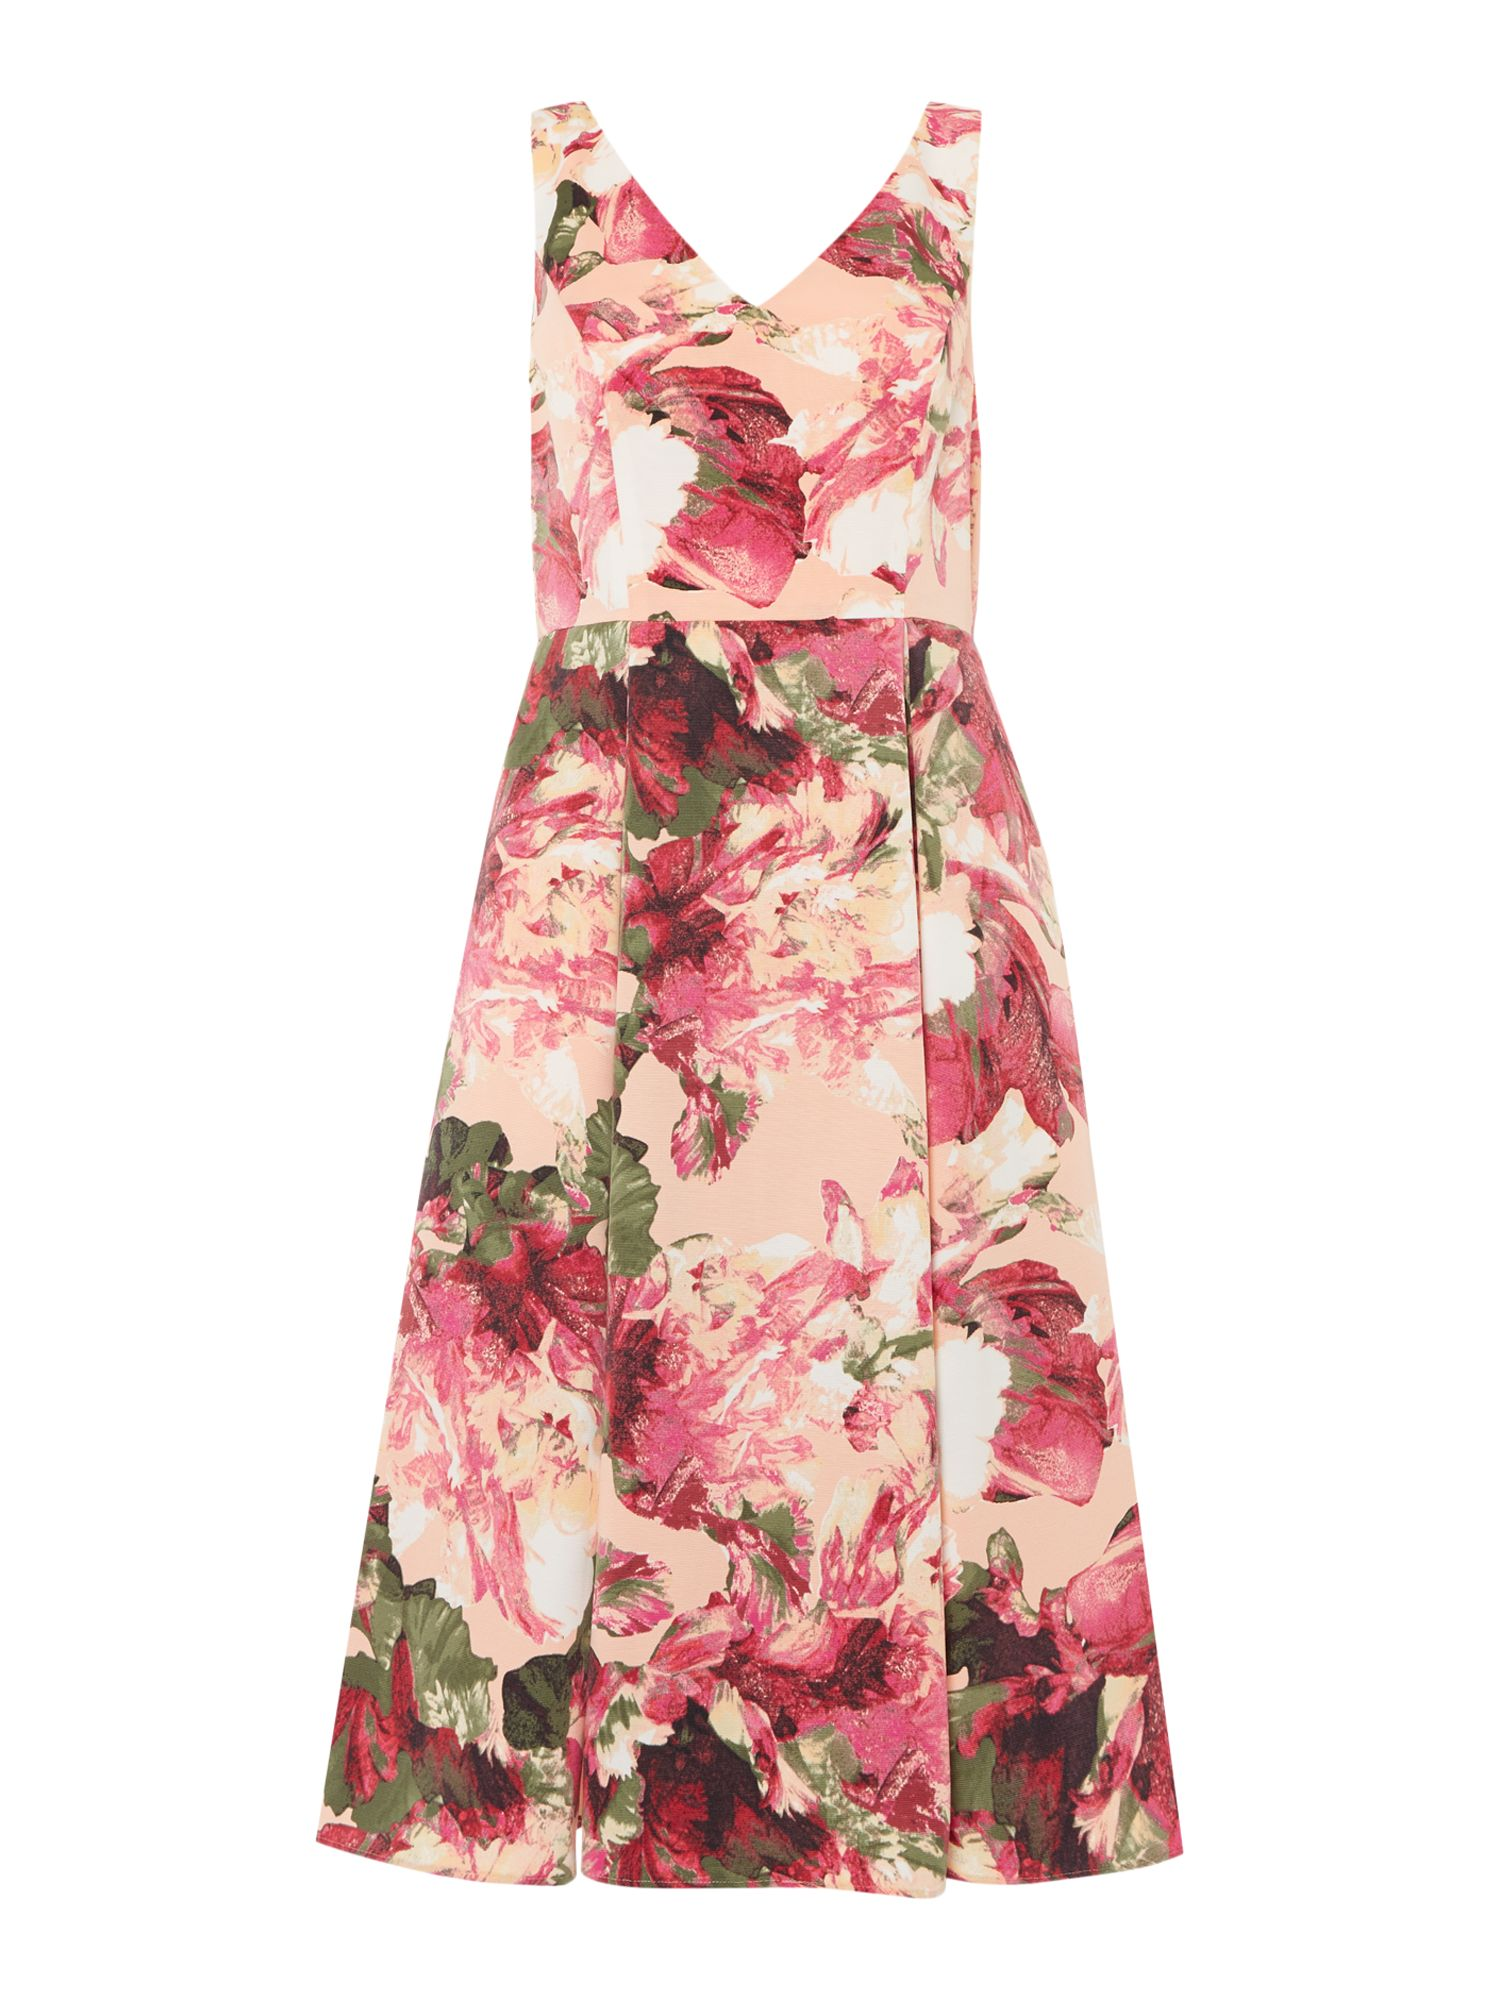 Adrianna Papell Sleeveless v neck fit and flare tea dress, Apricot